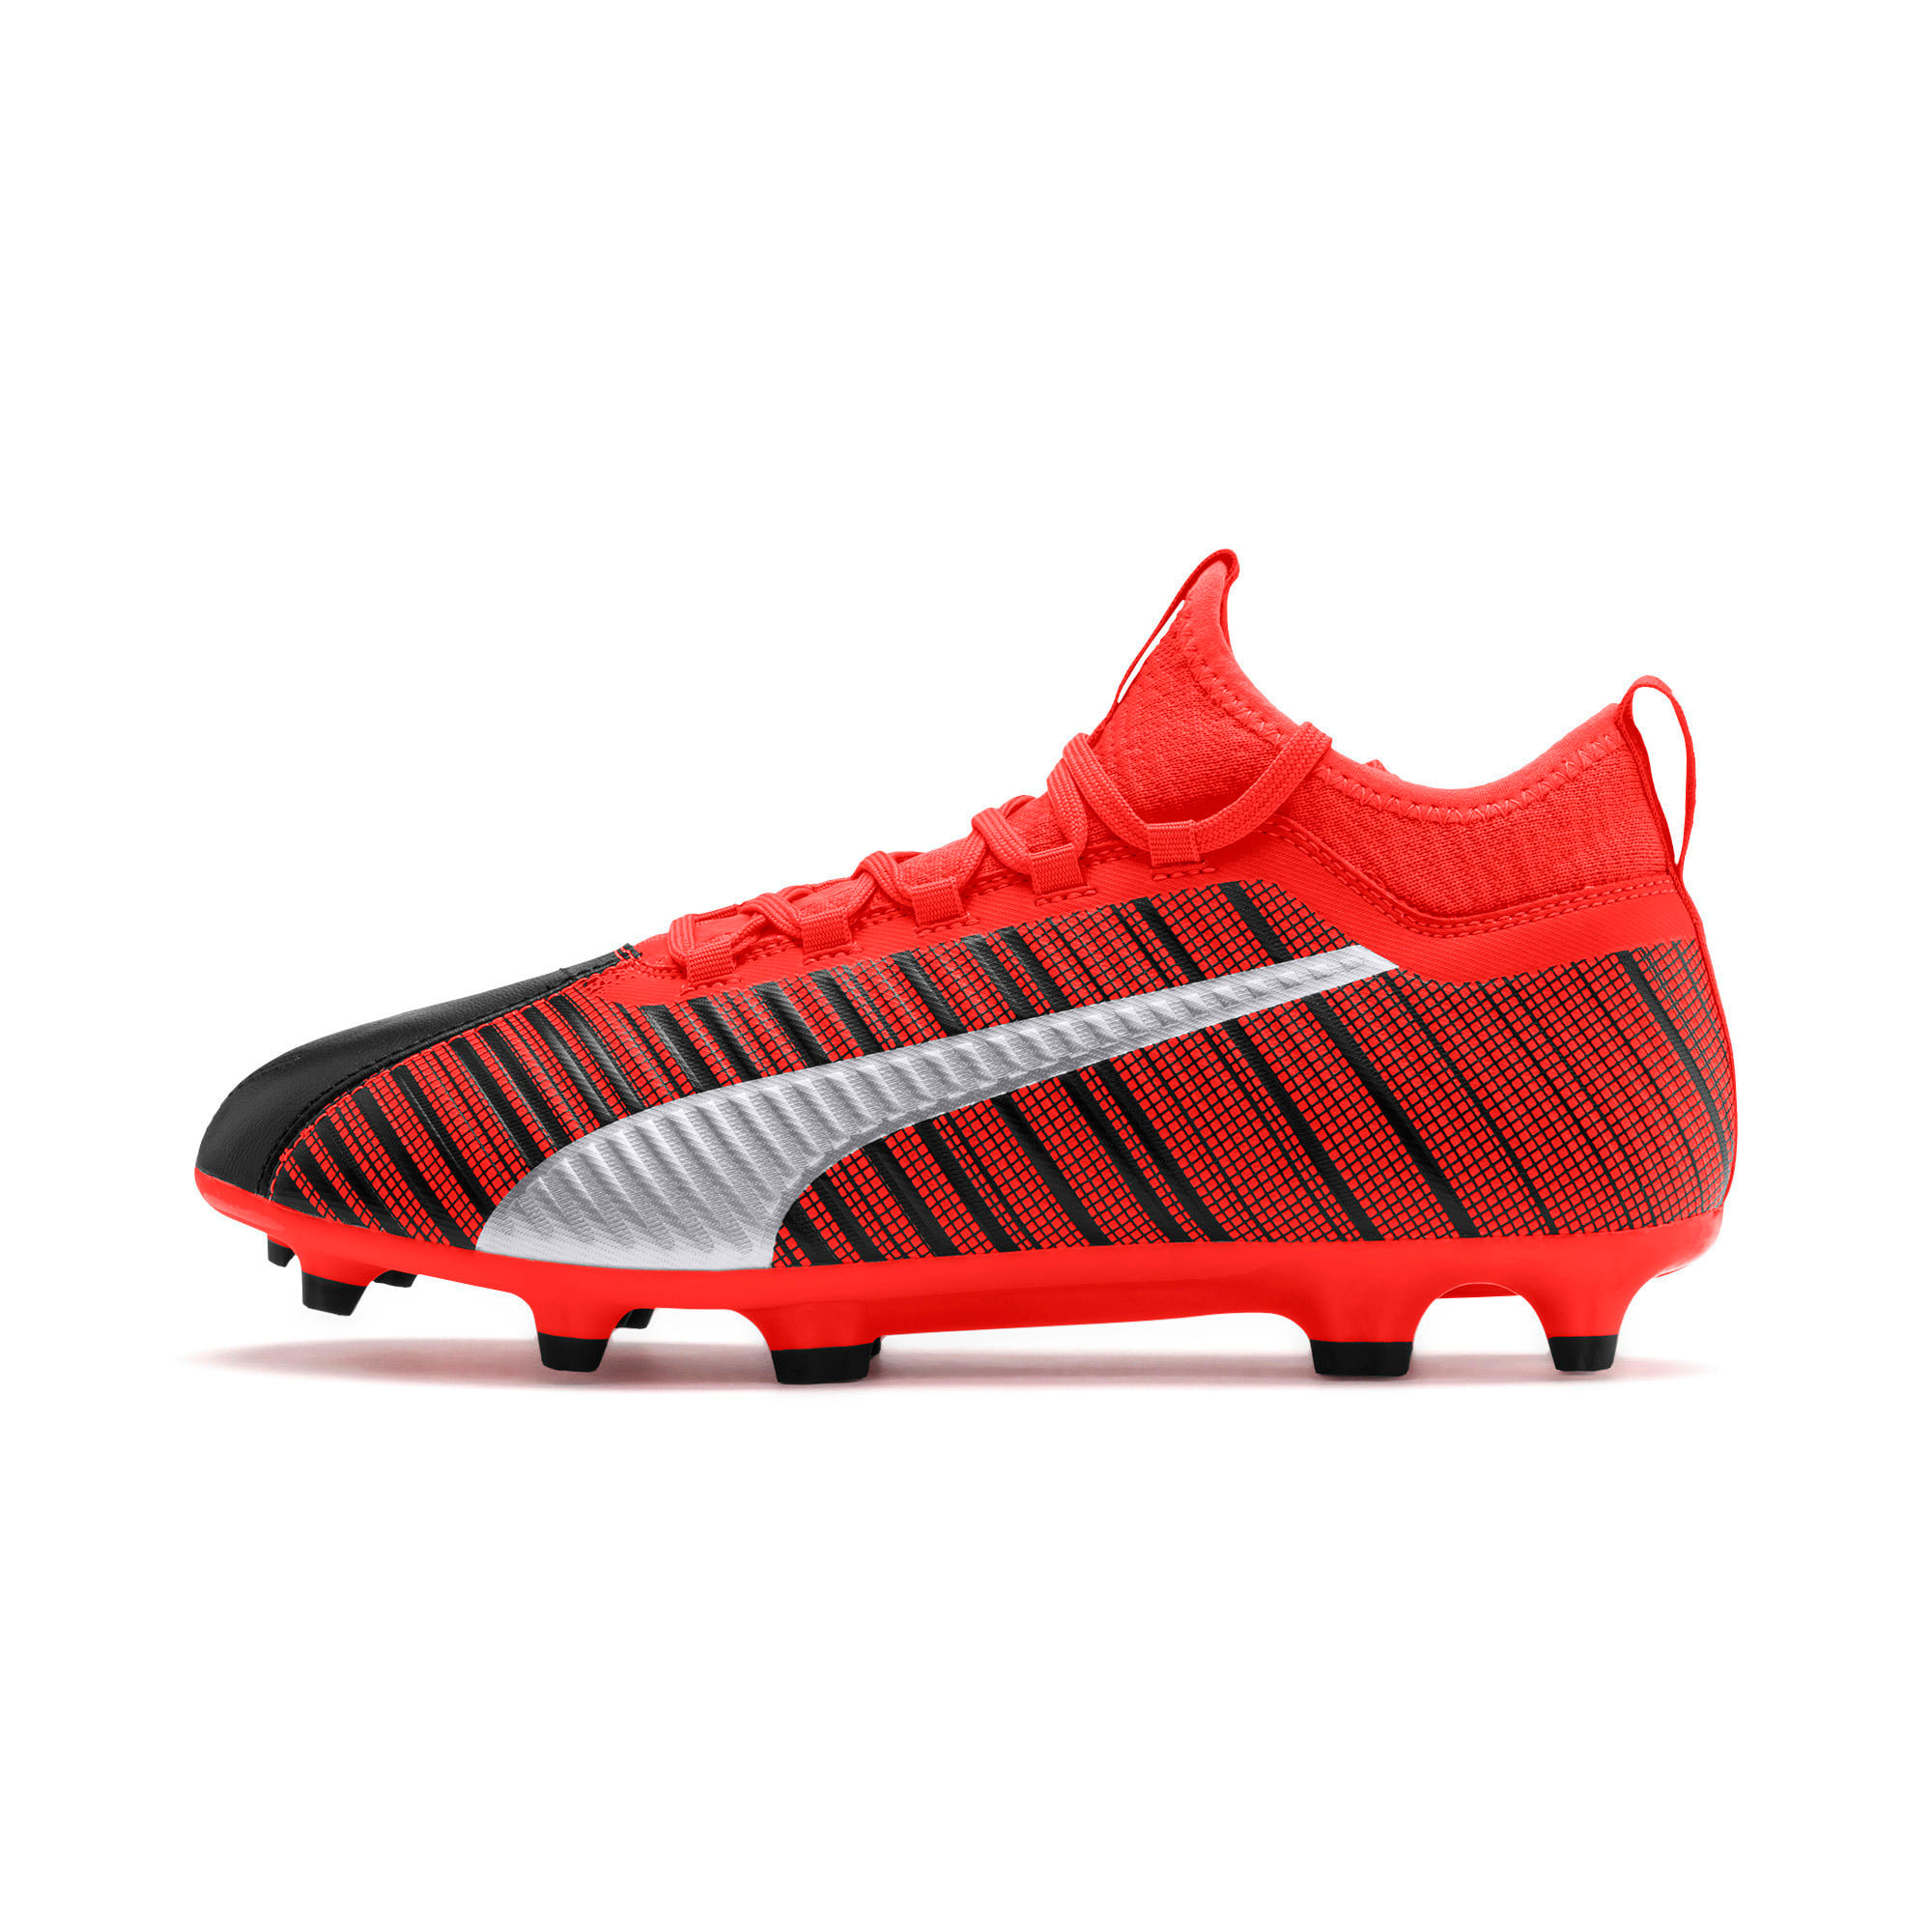 Thumbnail 1 of PUMA ONE 5.3 FG/AG Men's Football Boots, Black-Nrgy Red-Aged Silver, medium-IND